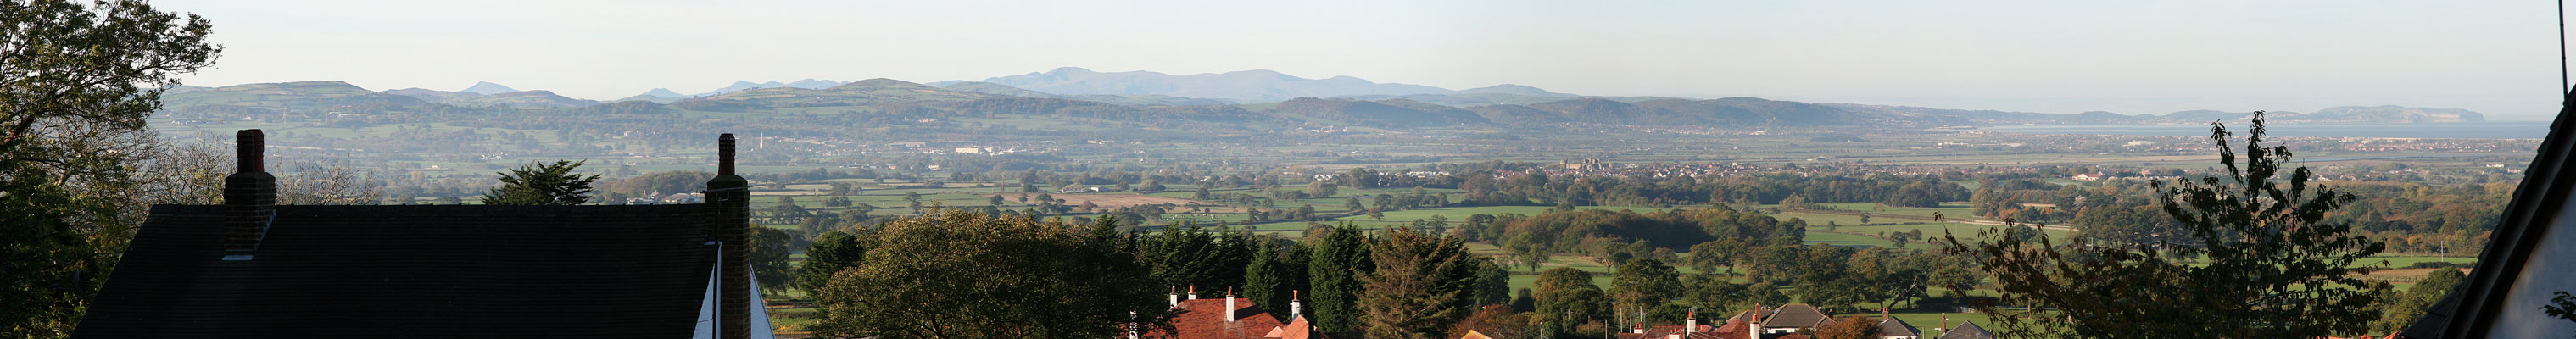 Panorama from Gibbs' Wood (Foel Wood), Dyserth, over the Vale of Clwyd towards Snowdonia